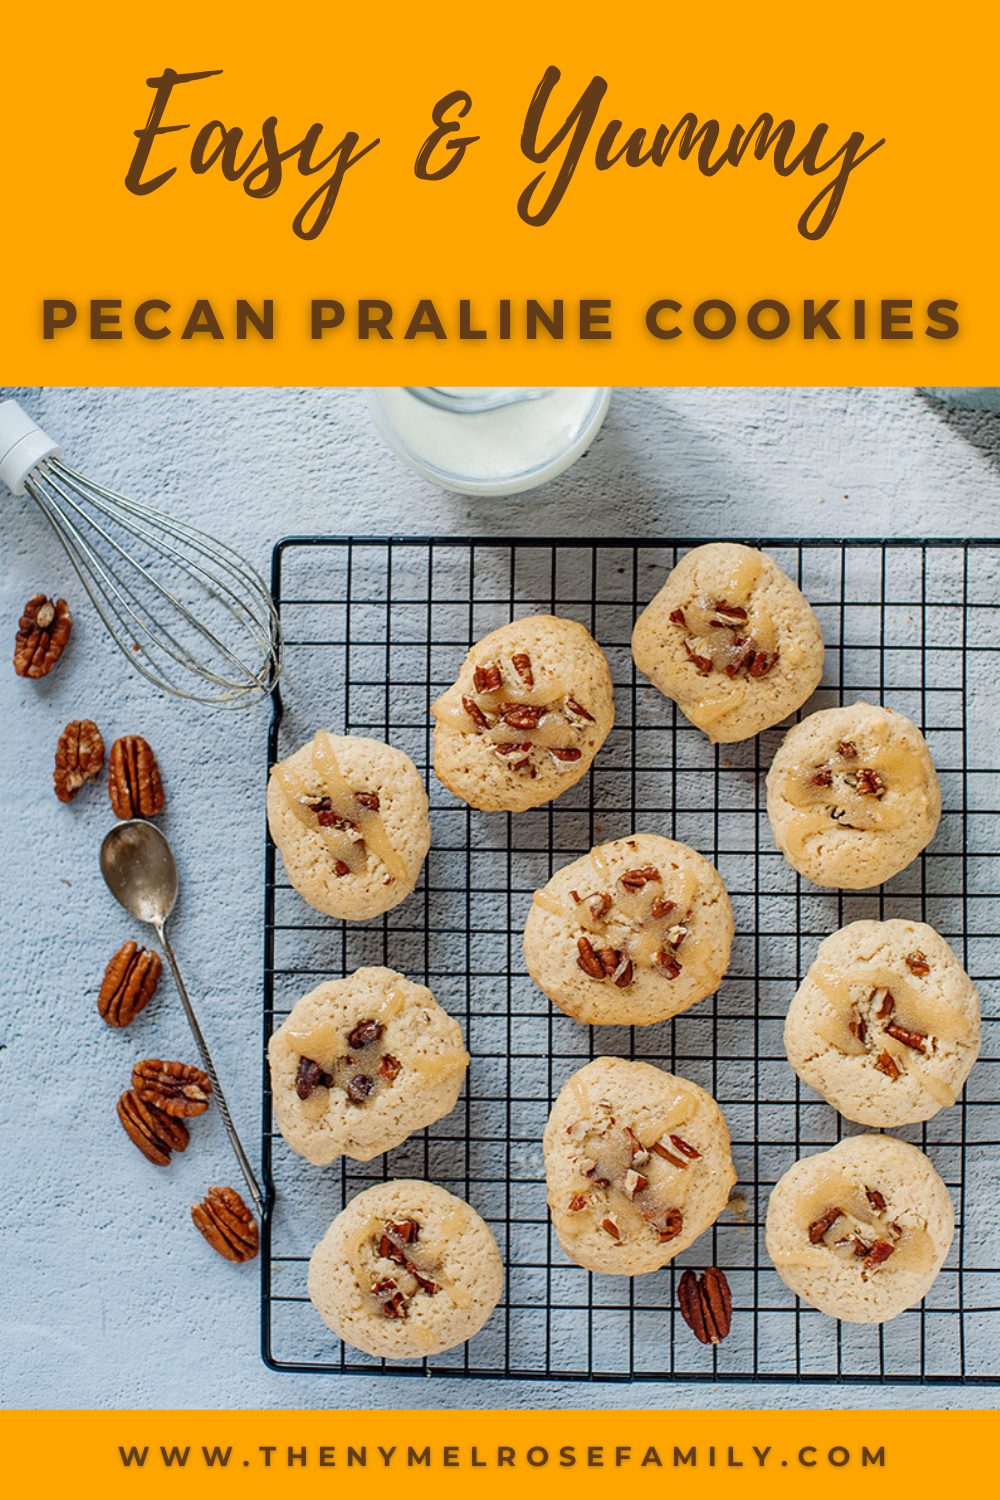 These easy and tasty Pecan Praline Cookies are loaded with the goodness of pecan nuts and homemade icing. Perfect for holidays, gifting and celebrating the warm fall season. #pecanpralinecookies #cookierecipes #fallrecipes #nymelrosefamily via @jennymelrose